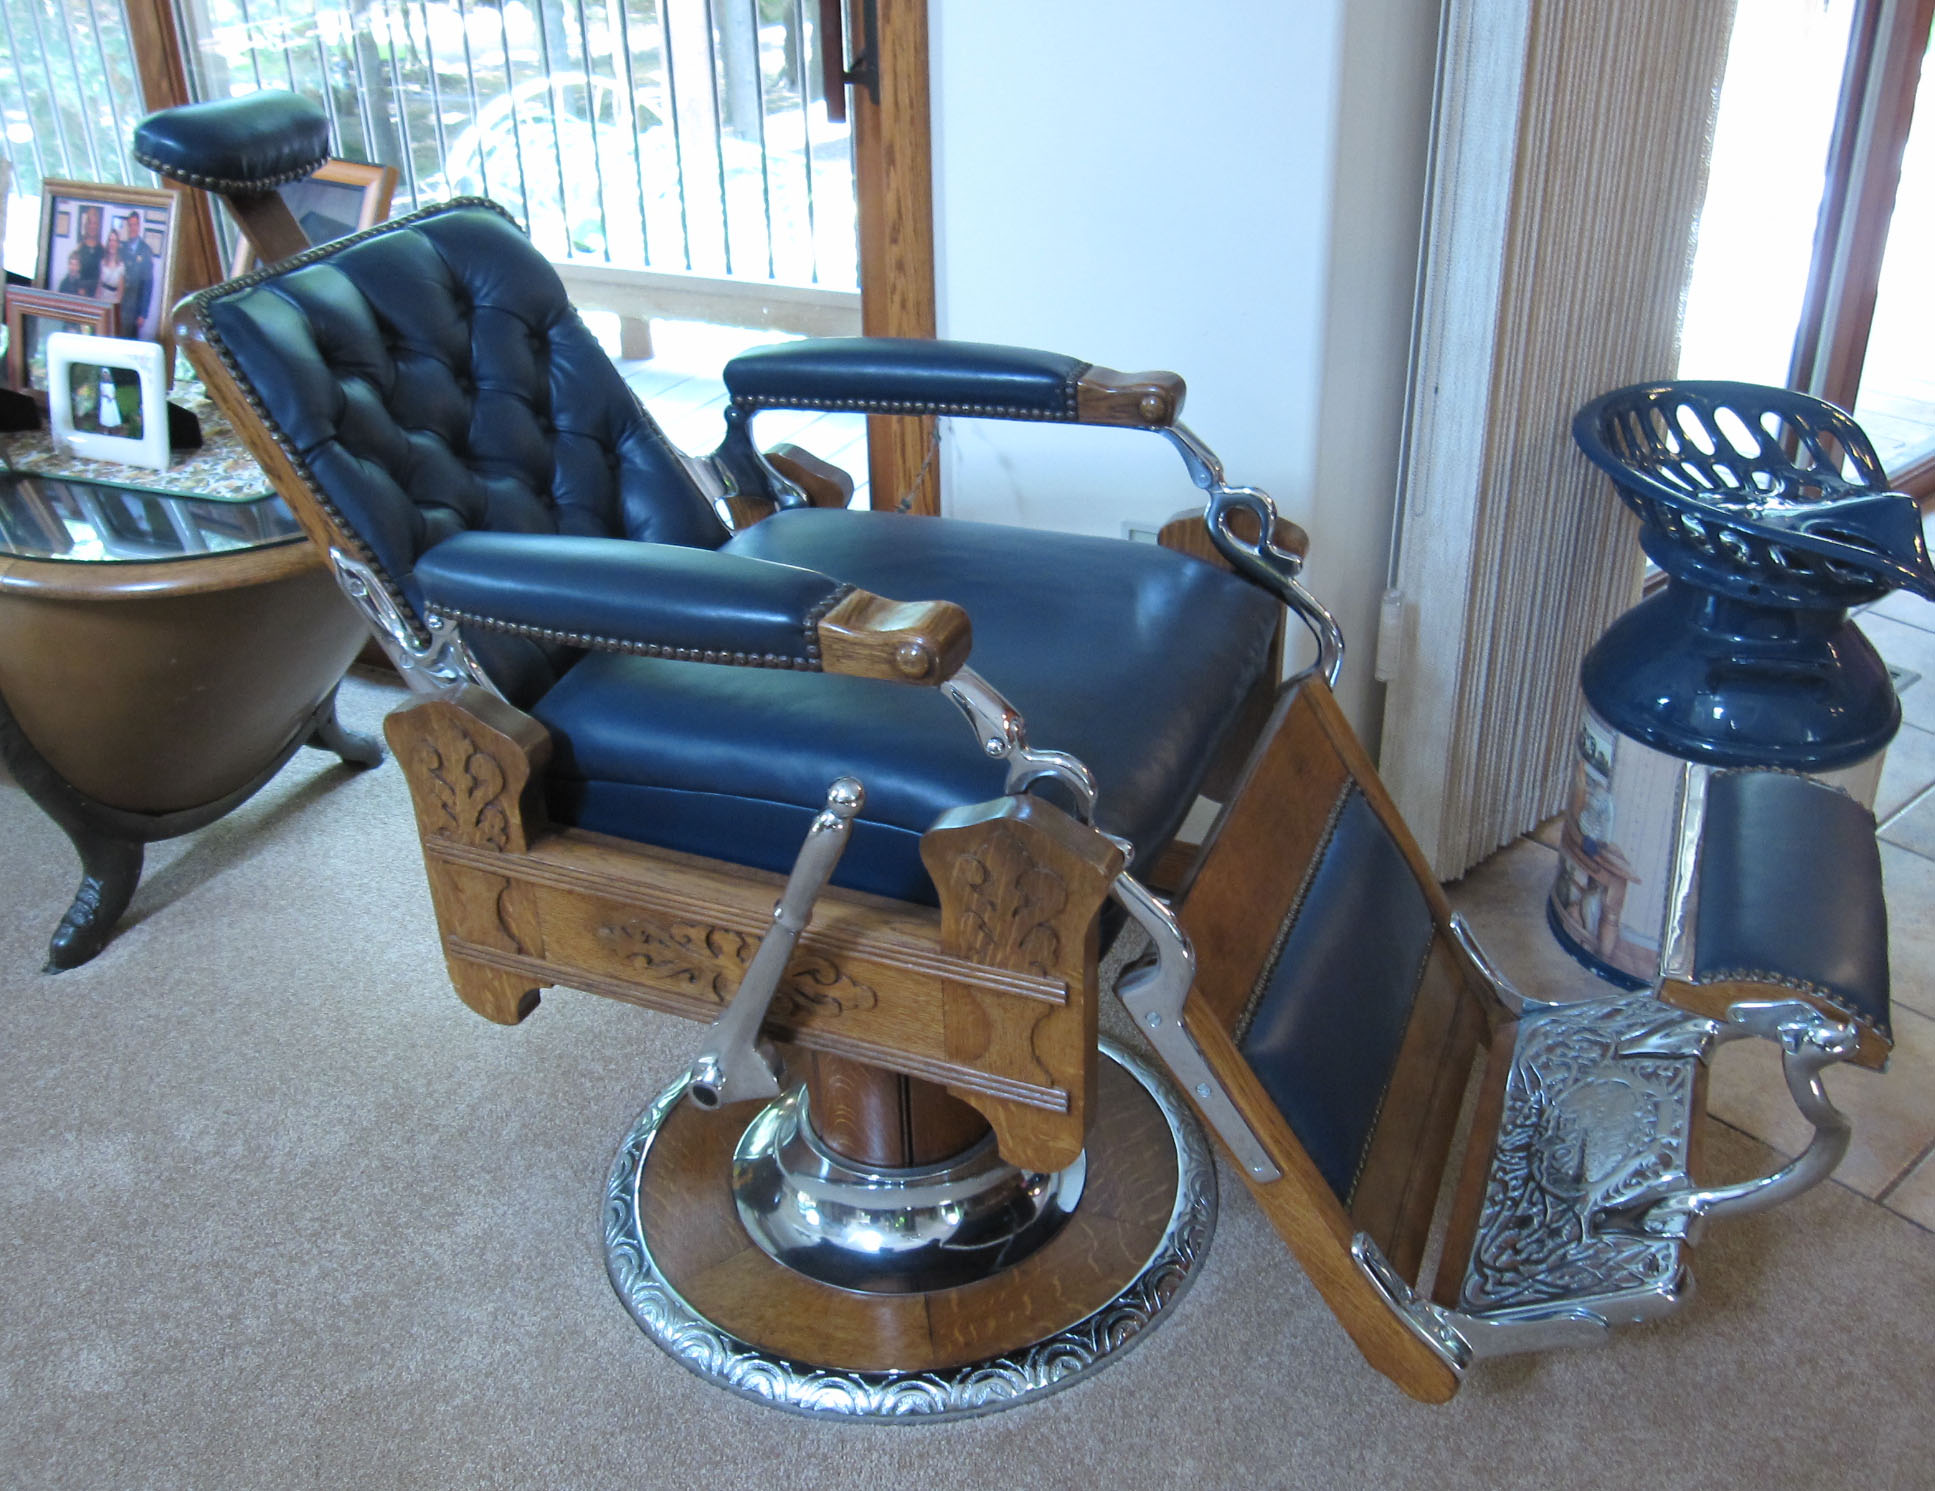 r all doesn on to mean you a purpose value barber hydraulic the images market koken quality sacrifice for sale antiquekokenoakandcanebarberchair parts original have price best stunning t s chairs getting today chair